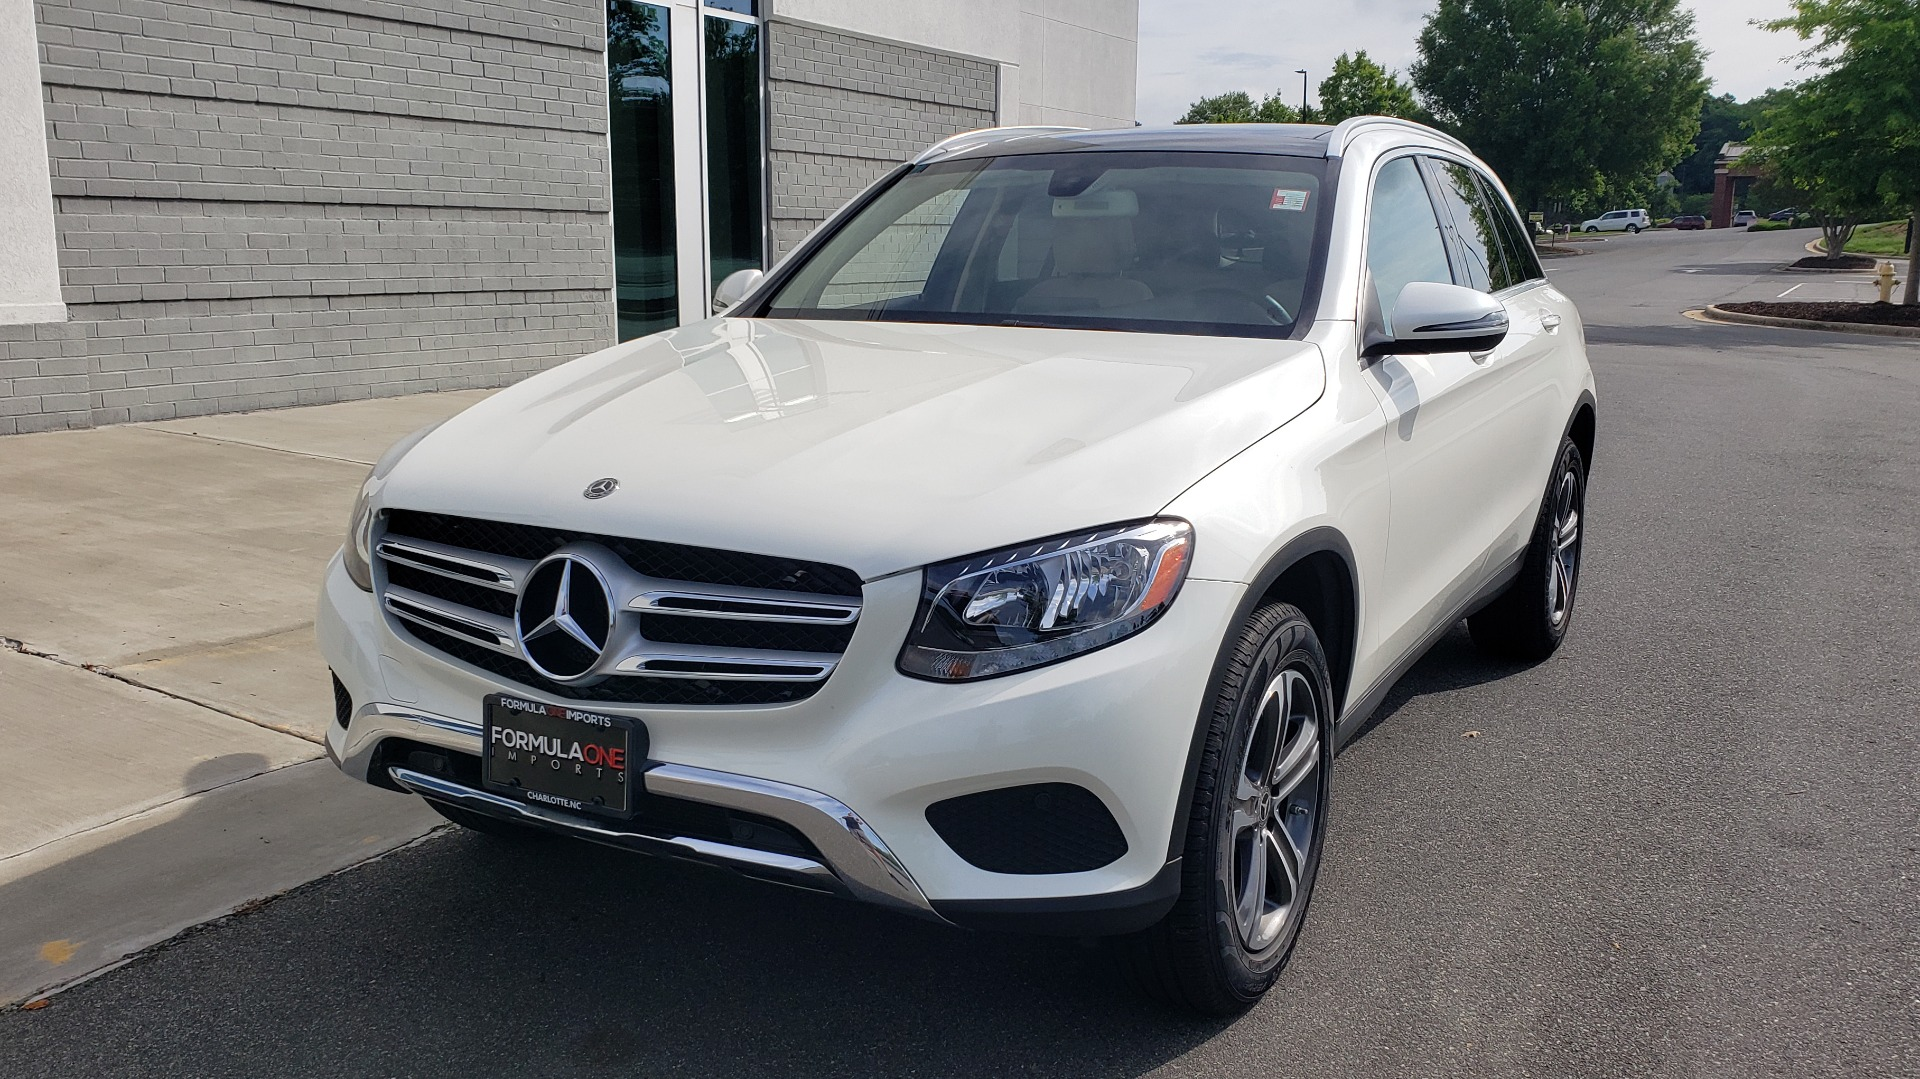 Used 2018 Mercedes-Benz GLC 300 4MATIC / PREM PKG / PANO-ROOF / APPLE / REARVIEW for sale $33,397 at Formula Imports in Charlotte NC 28227 3